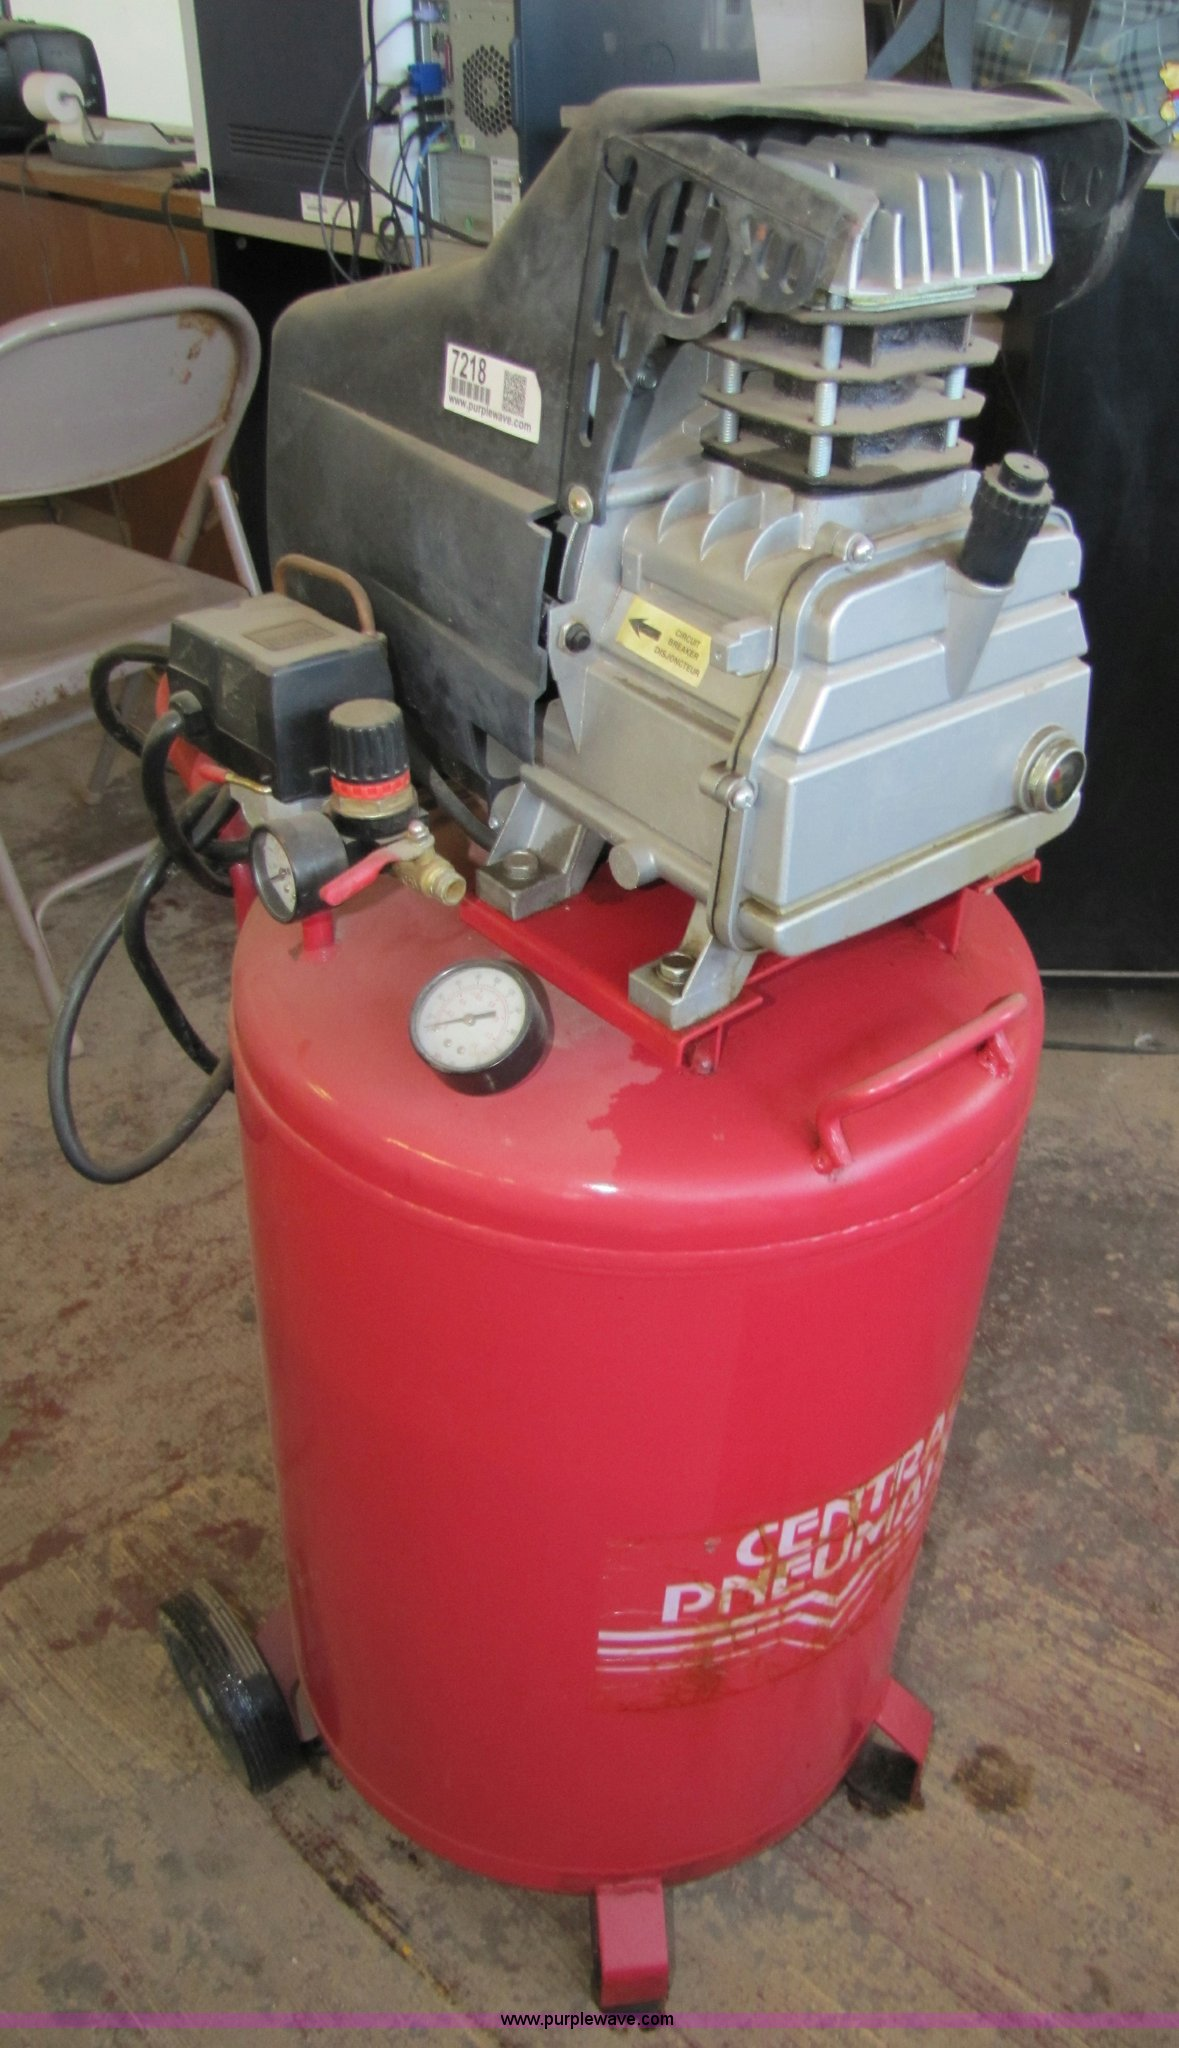 central pneumatic air compressor model 94667 manual